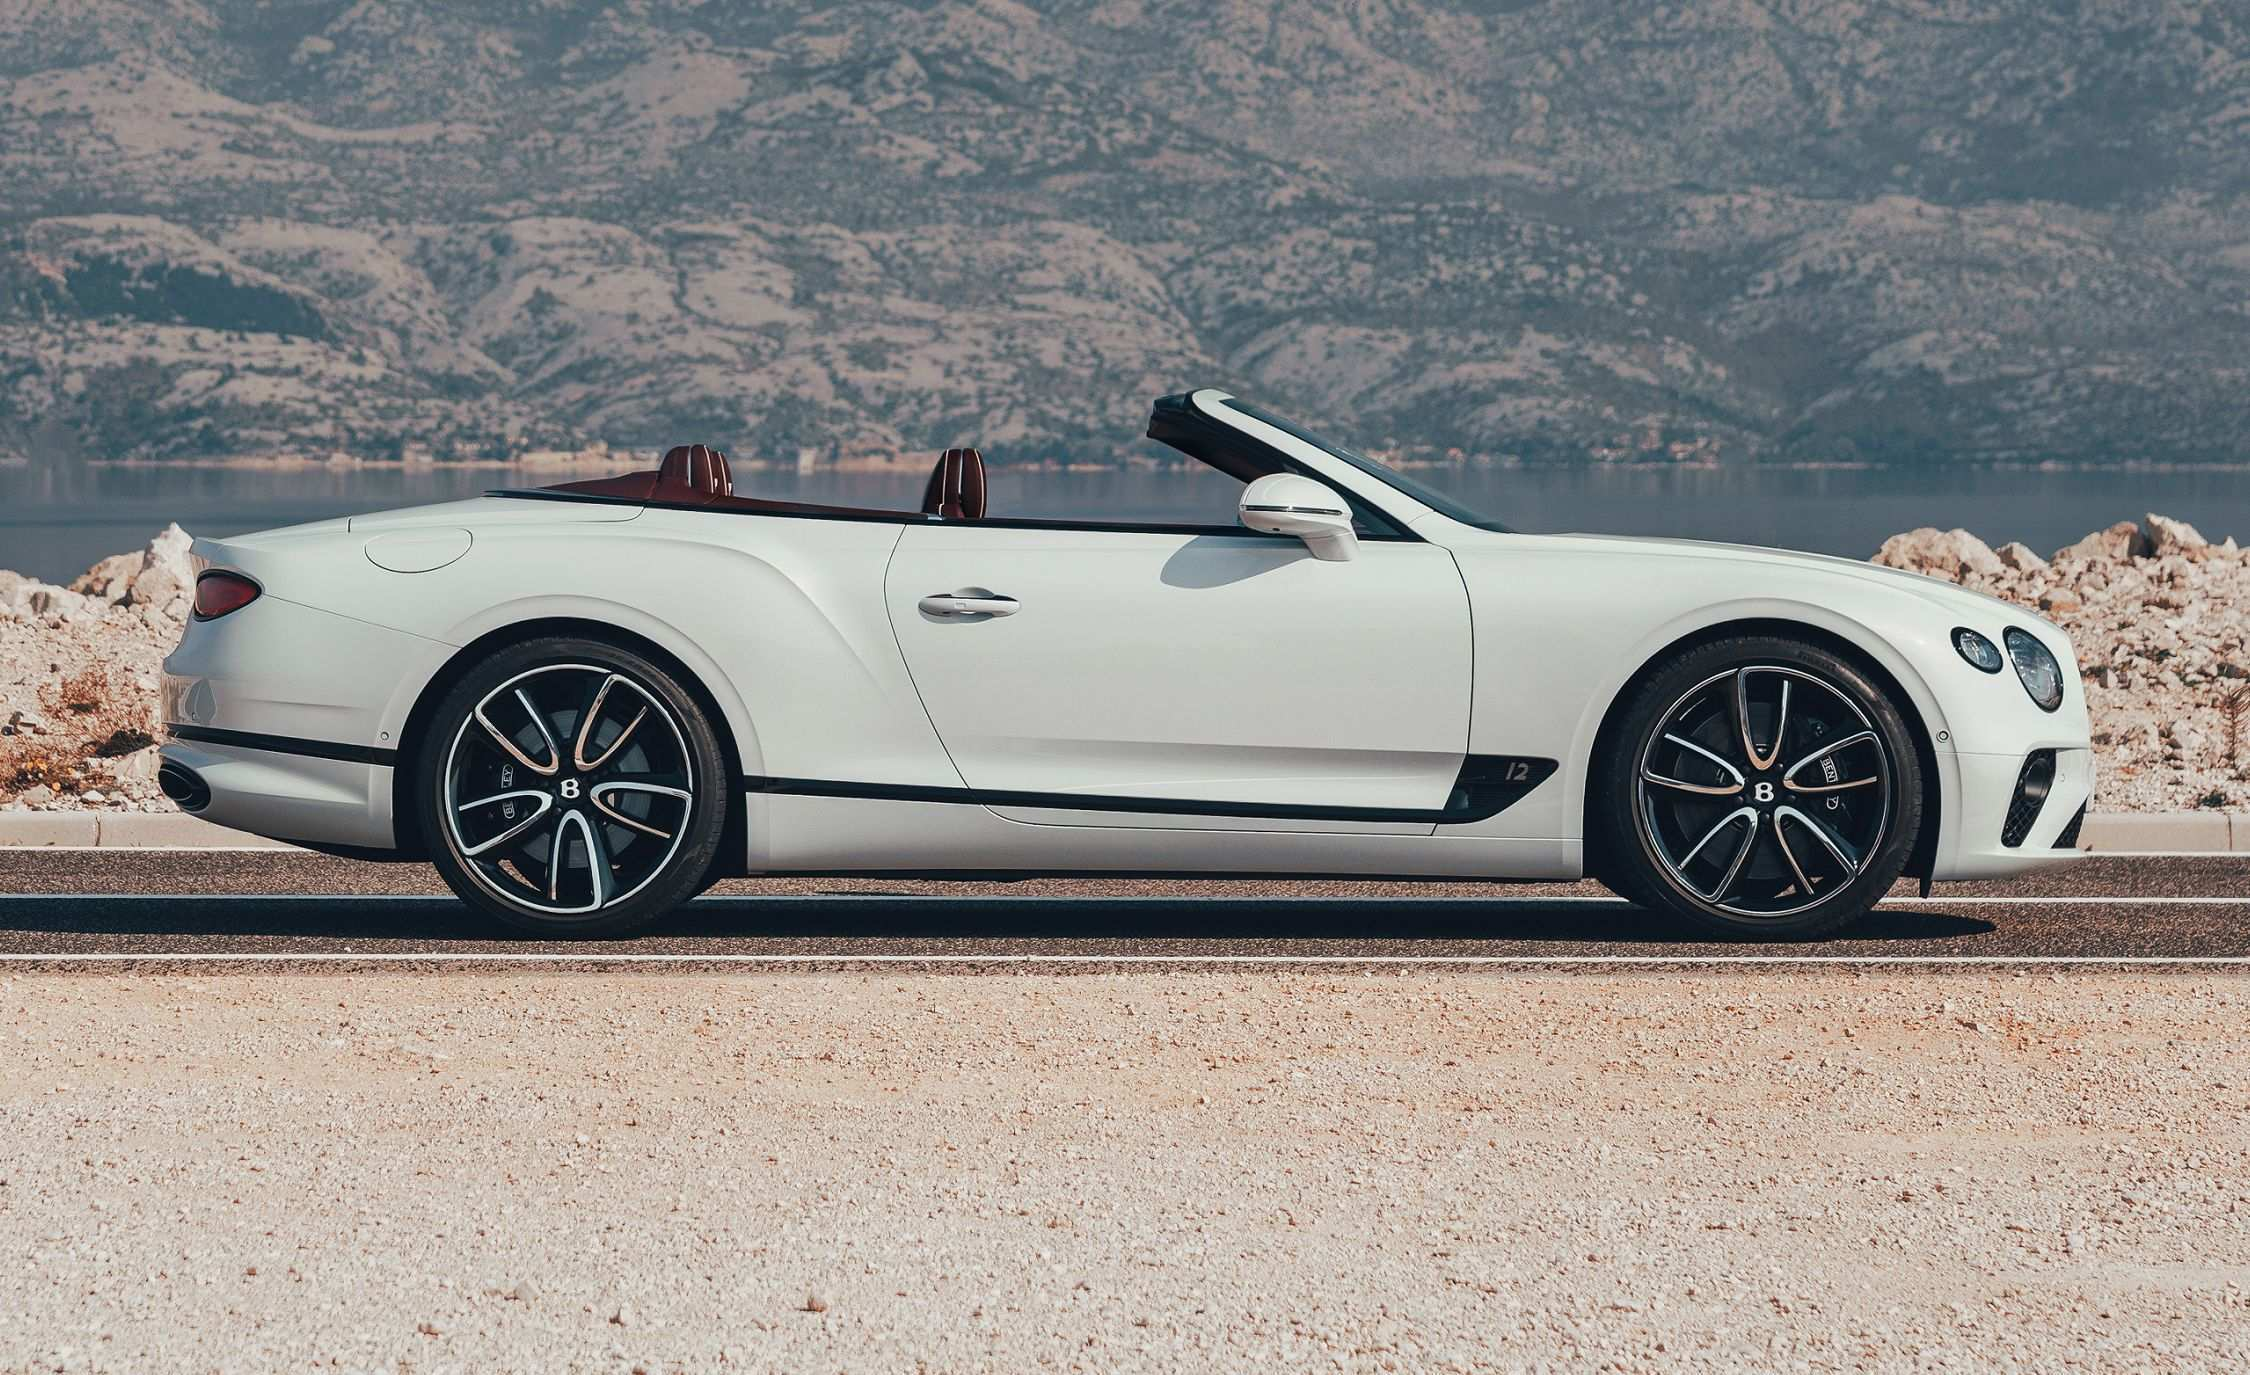 52 Best Review 2019 Bentley Continental Gtc Pricing with 2019 Bentley Continental Gtc